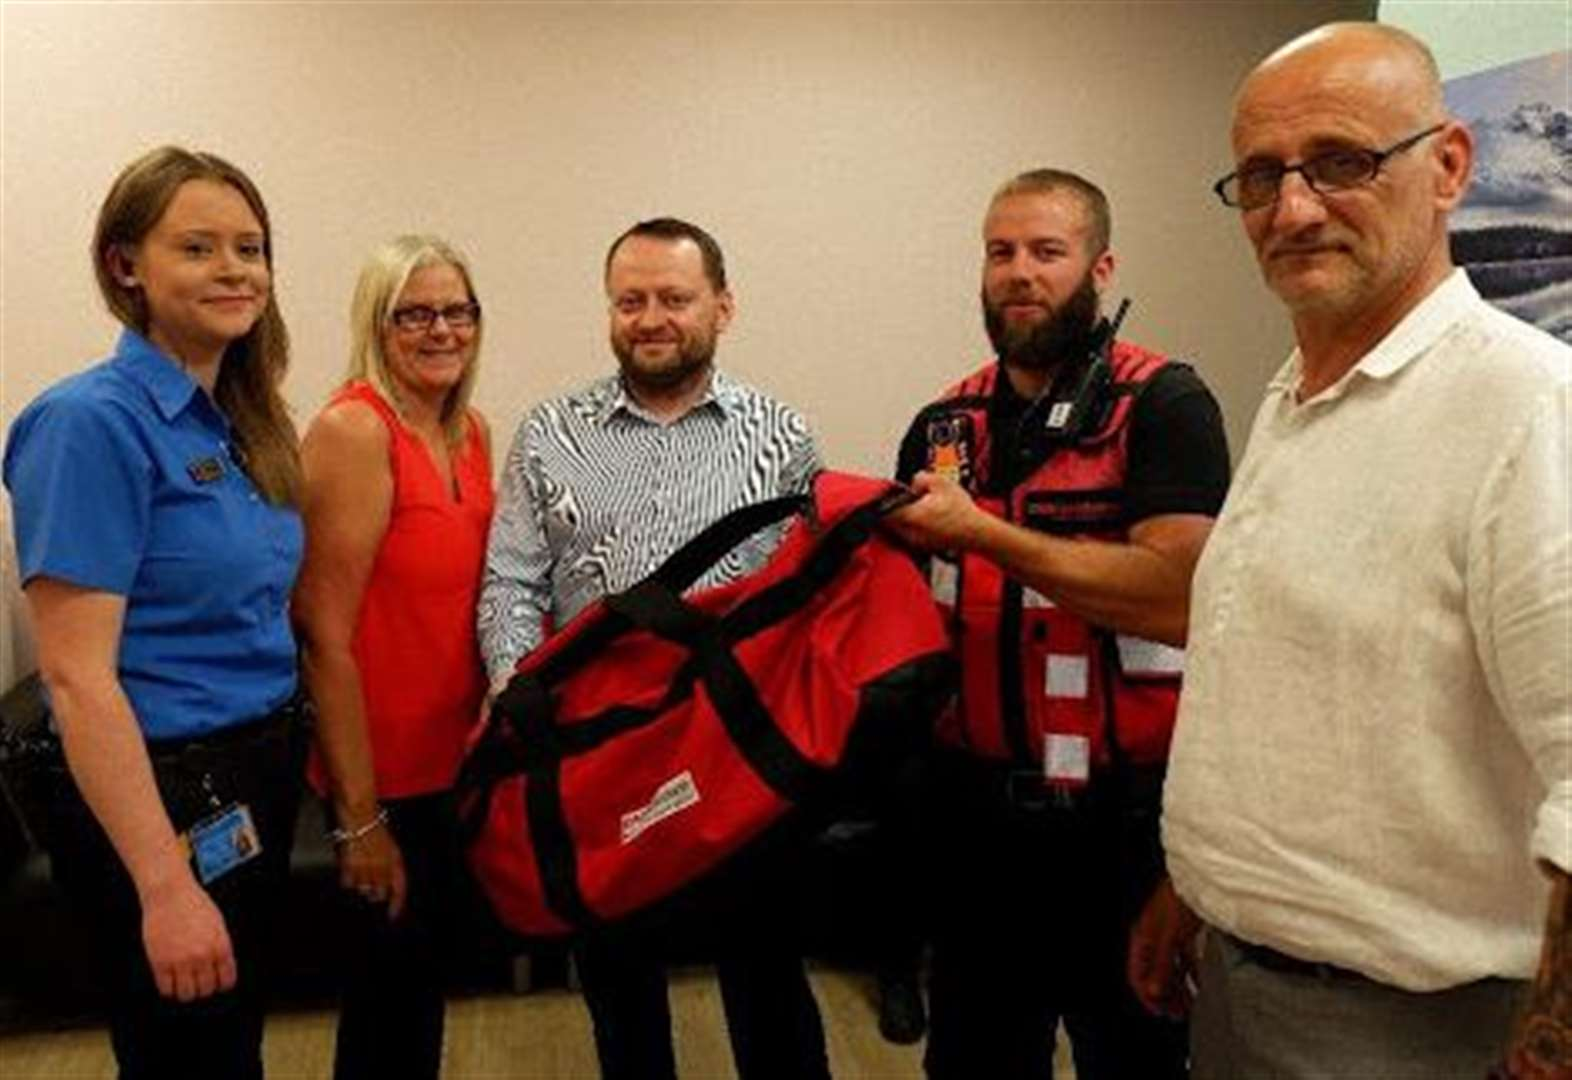 Town gets trauma packs for use in major incidents